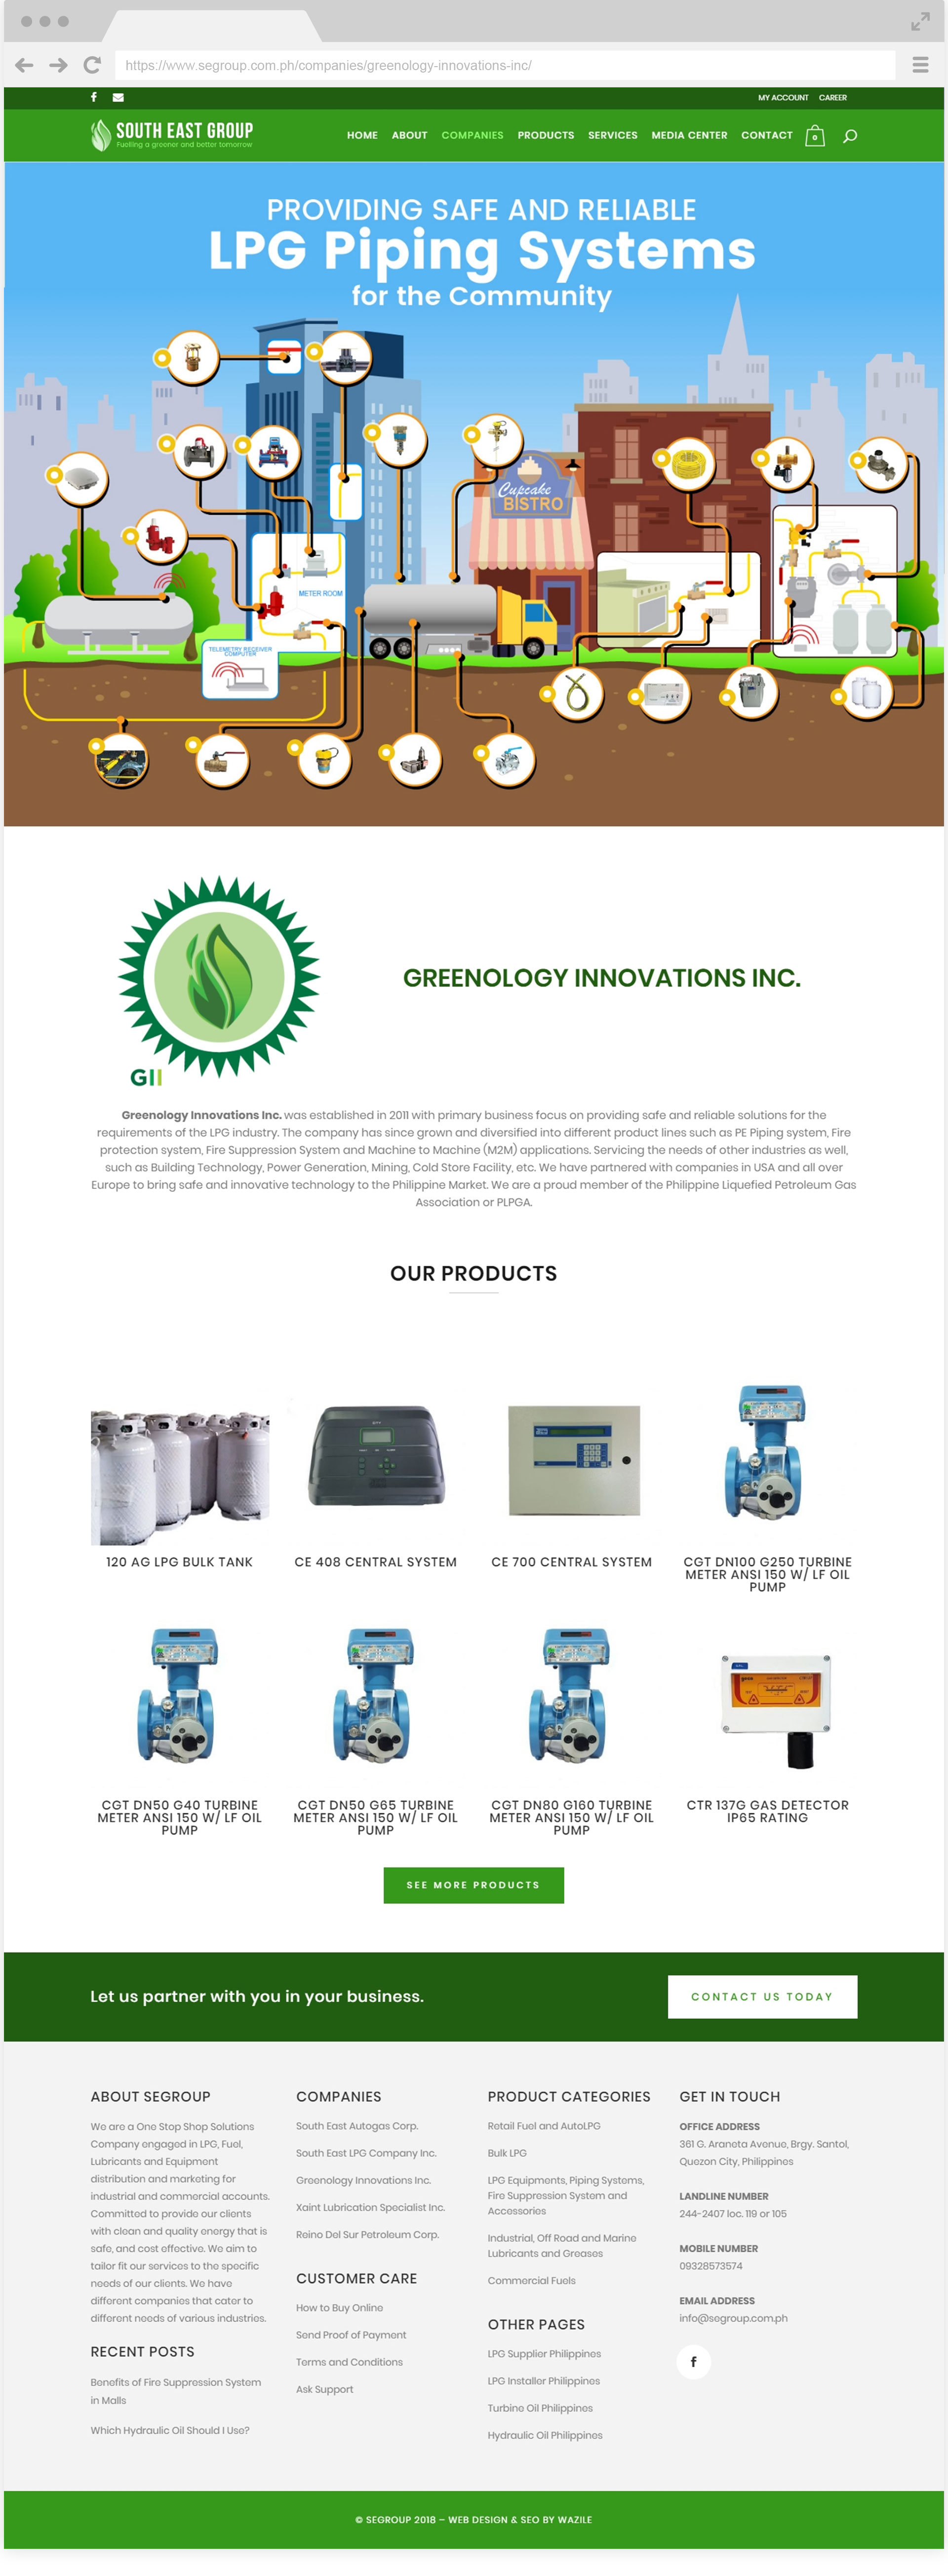 South East Group Greenology Innovations Inc.